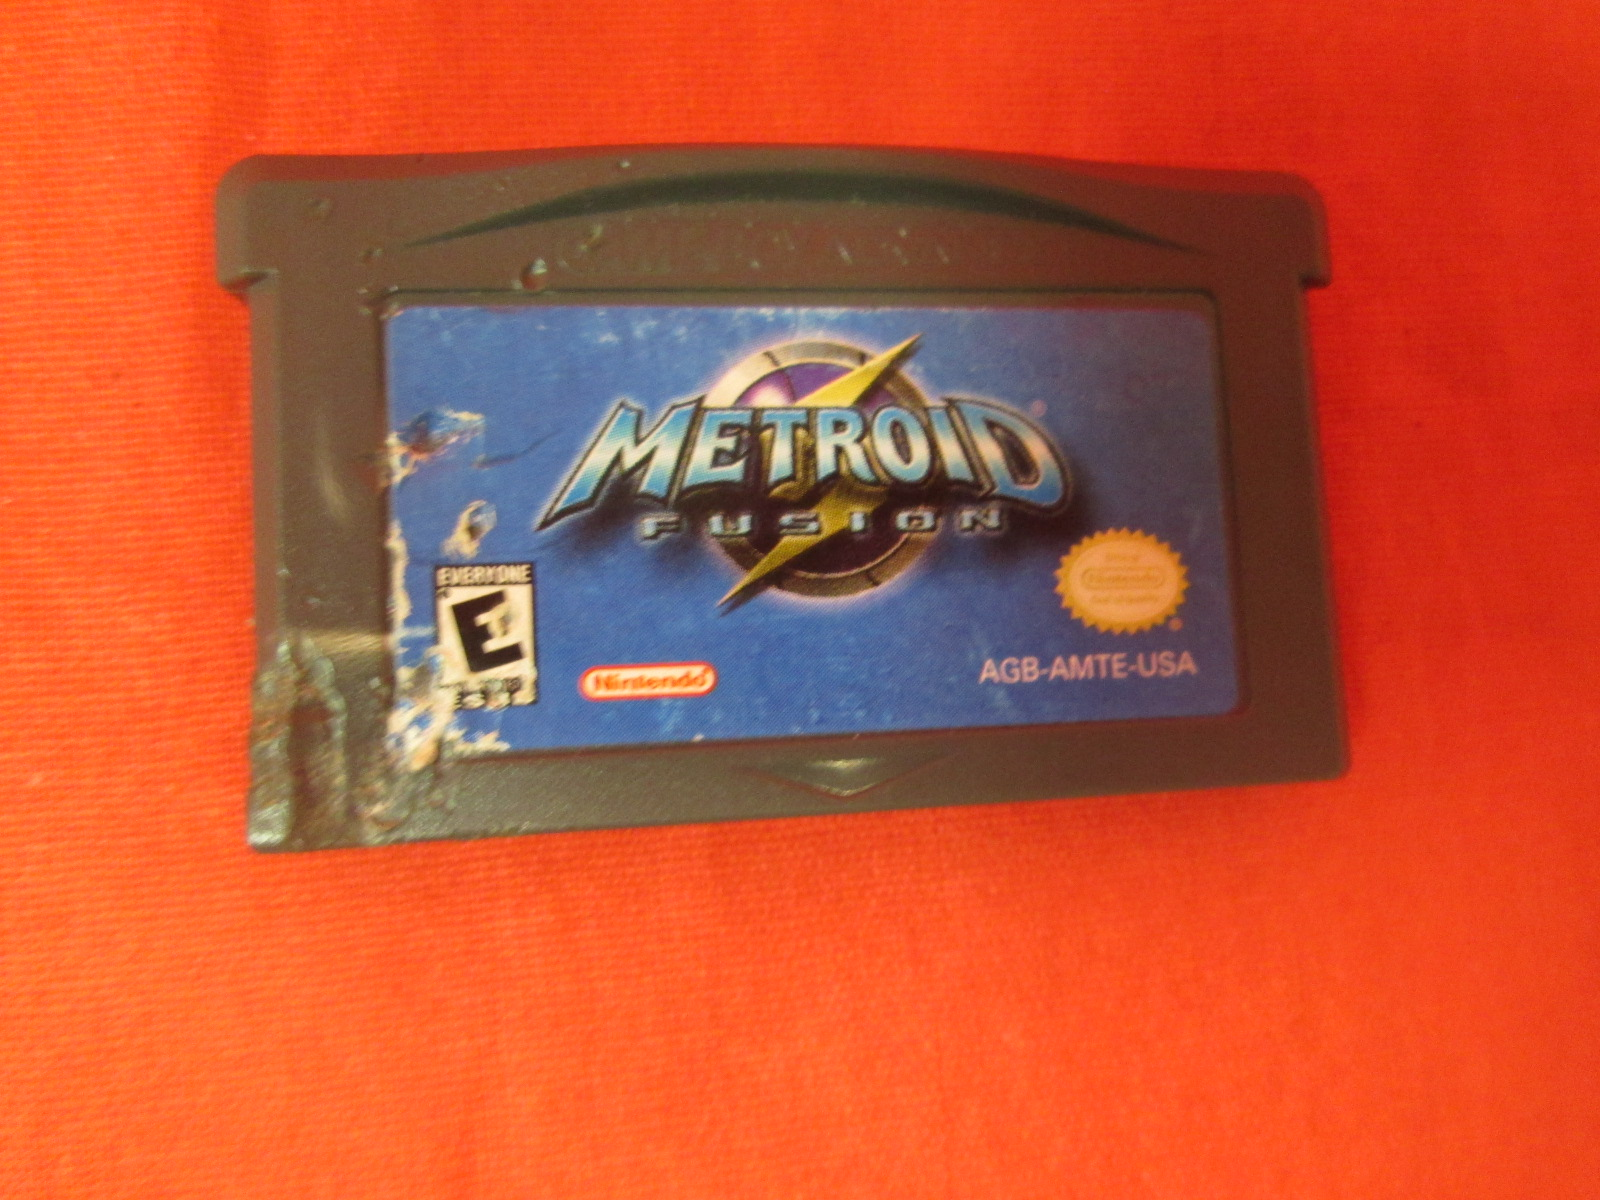 Metroid Fusion For GBA Gameboy Advance